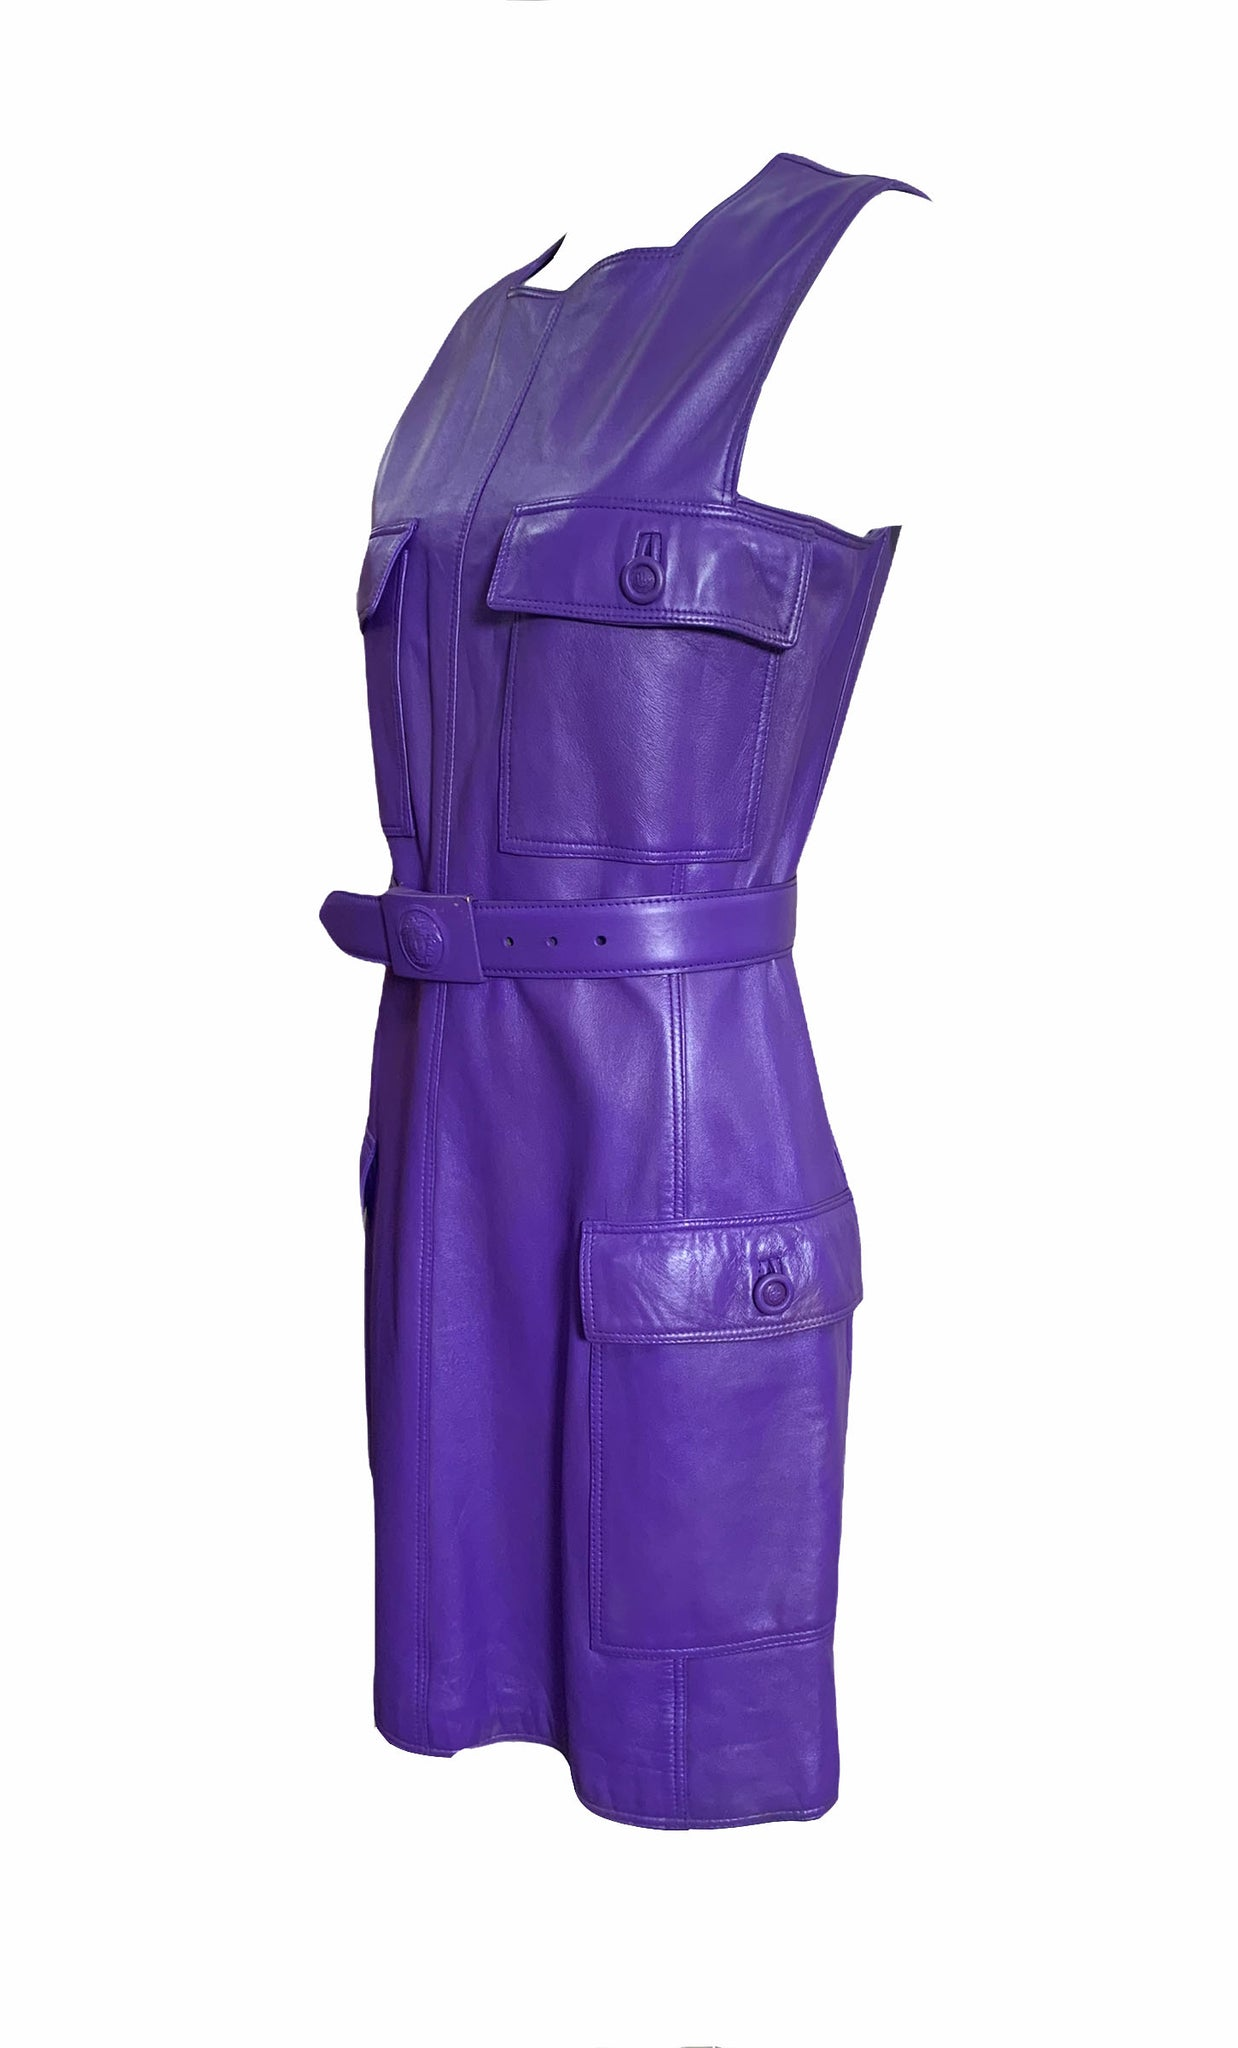 Gianni Versace Lifetime 90s Purple Leather Mini Dress ANGLE 4 of 7